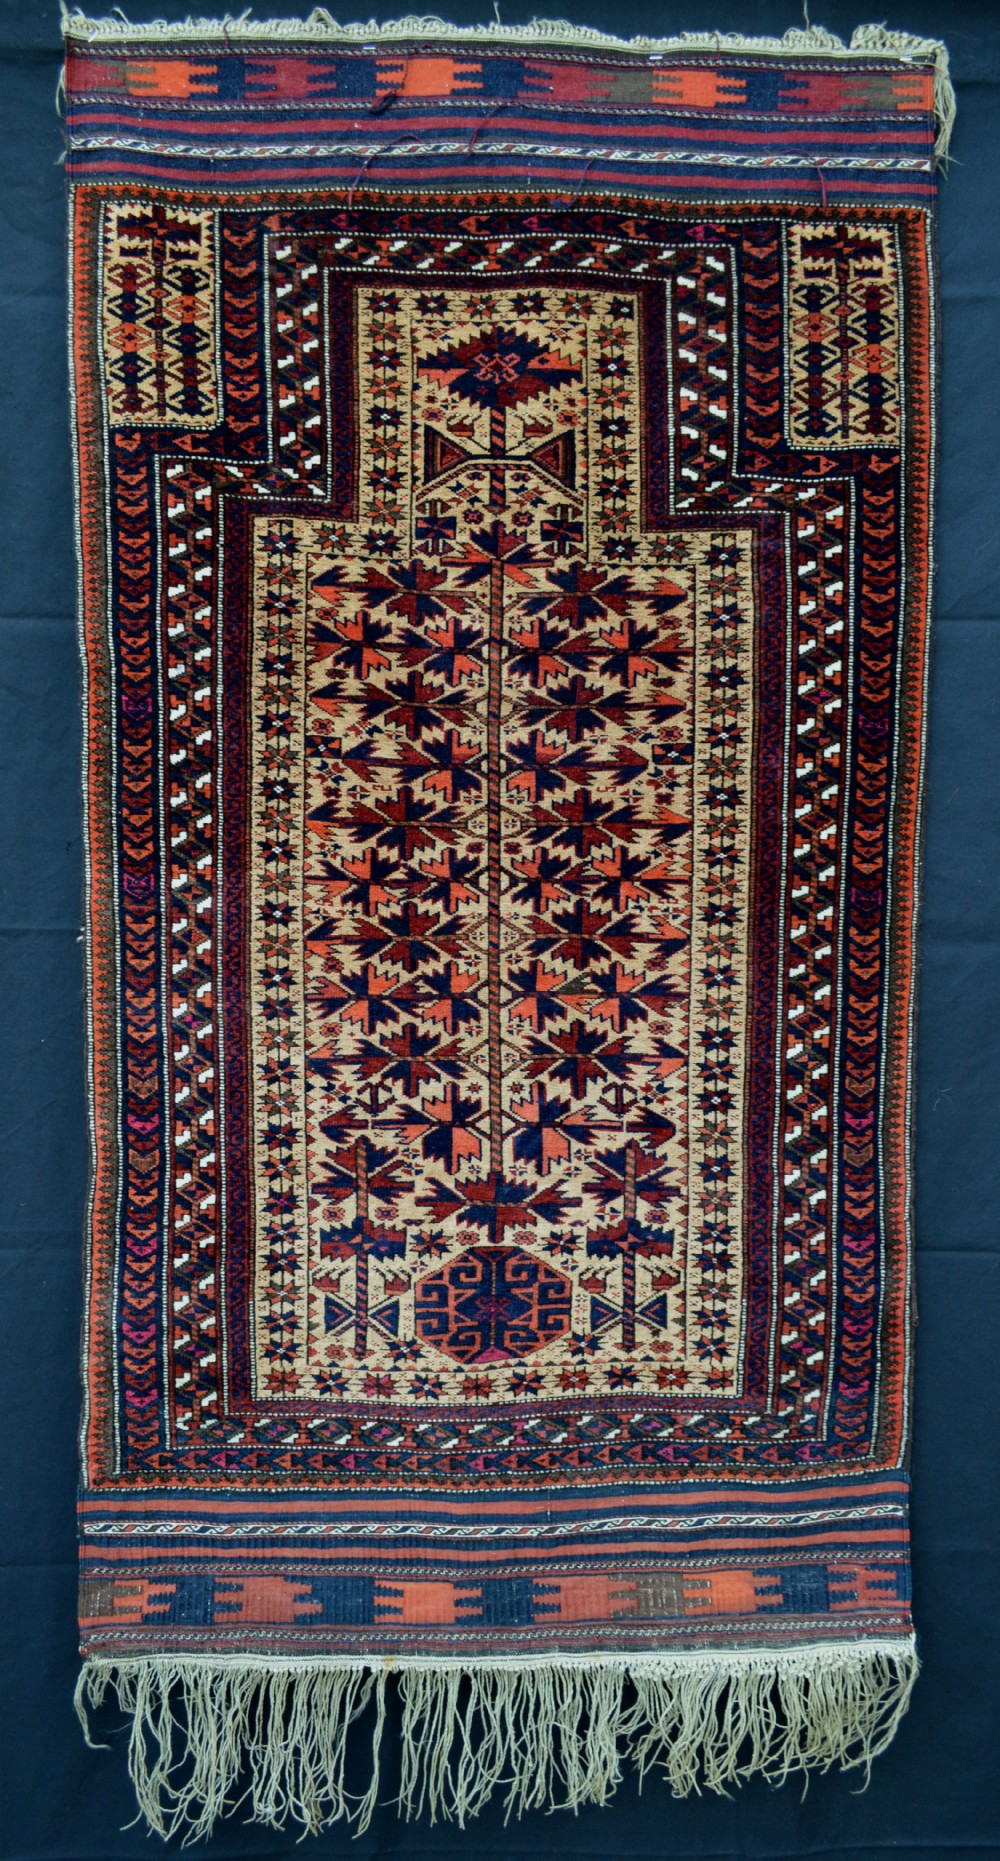 antique 'prayer rug' timurisangtschuli tribe western afghanistan